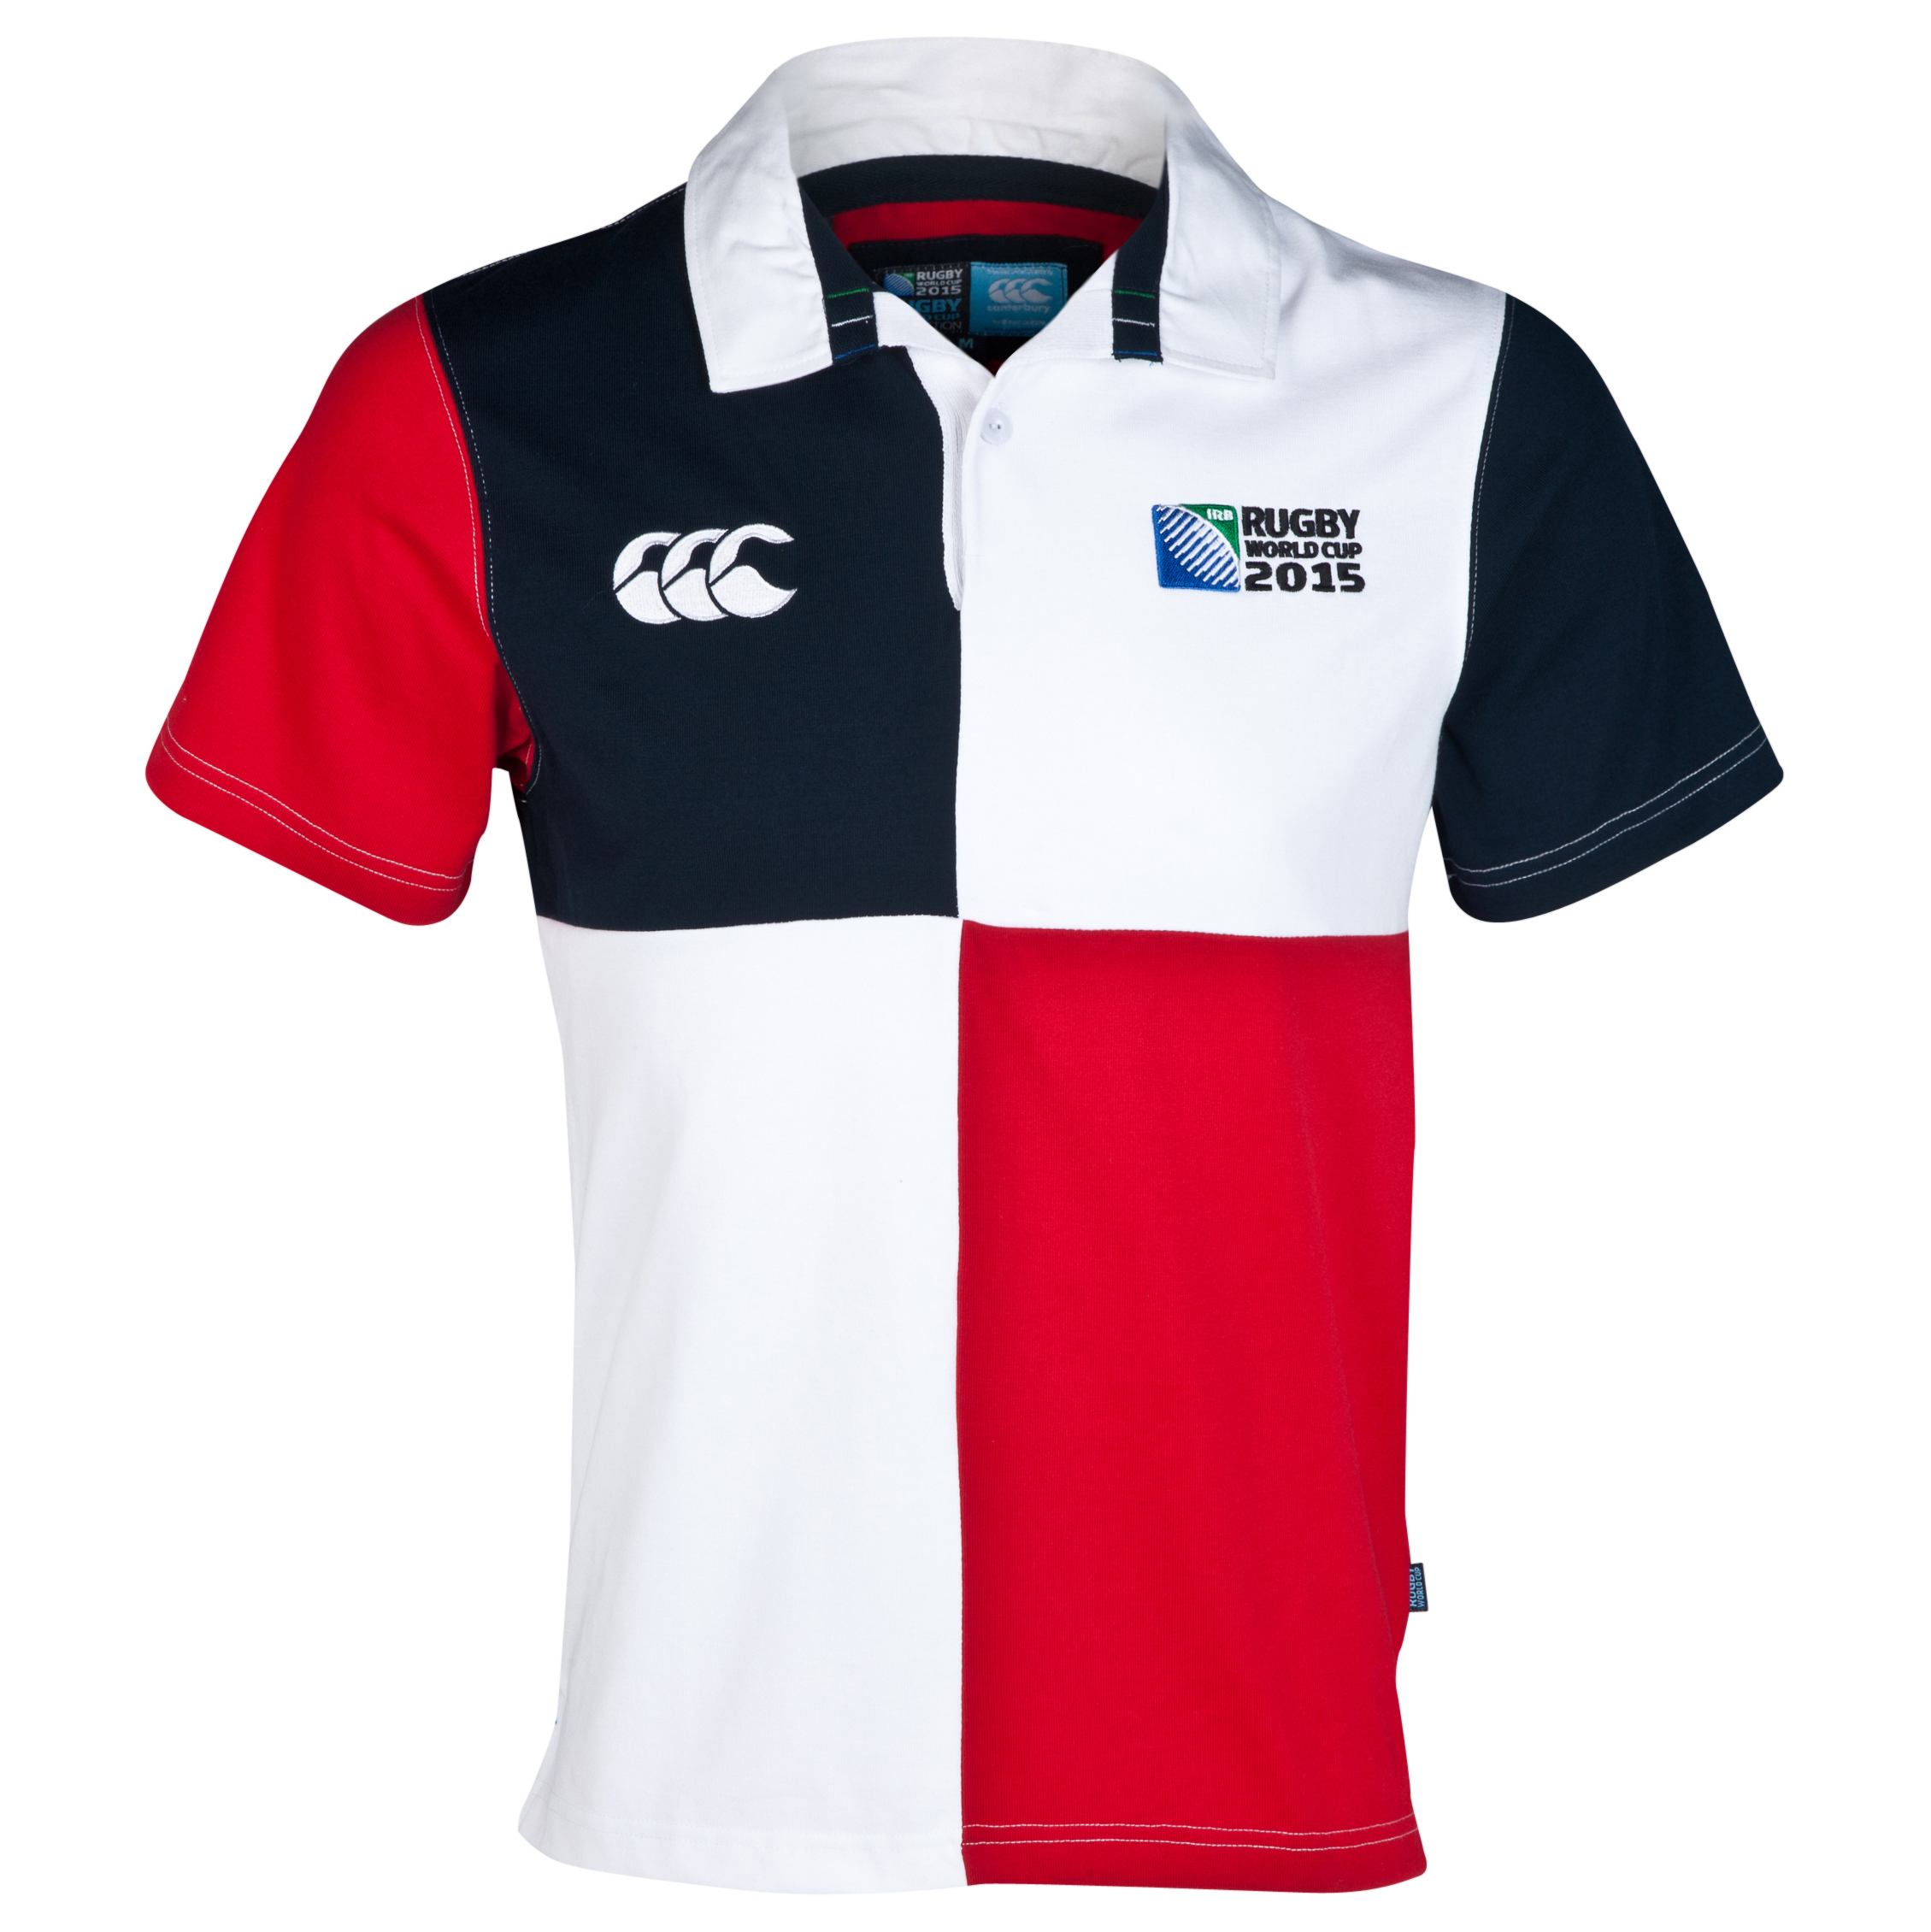 Canterbury Rugby World Cup Harlequin Short Sleeve Rugby Jersey White